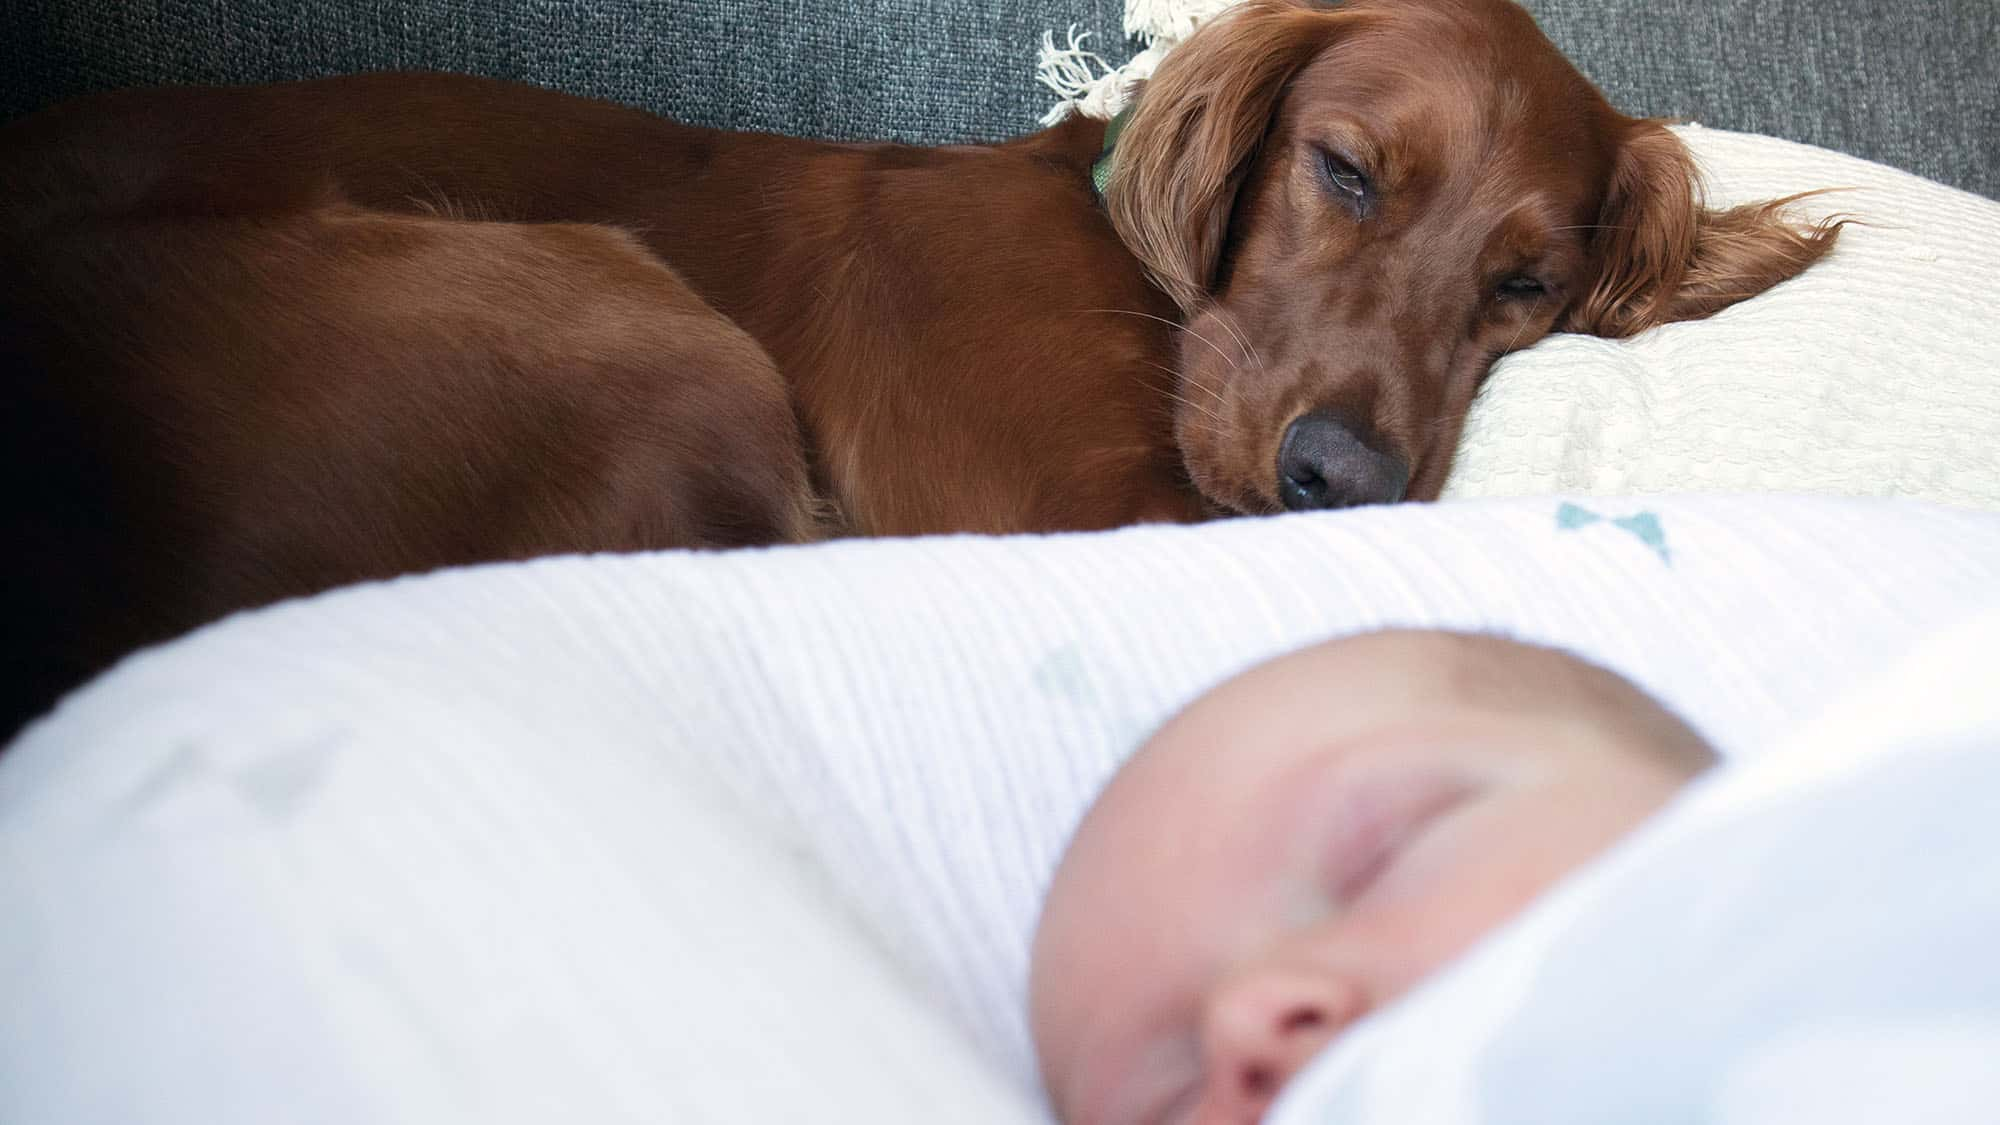 How To Introduce Dog To Baby - 3